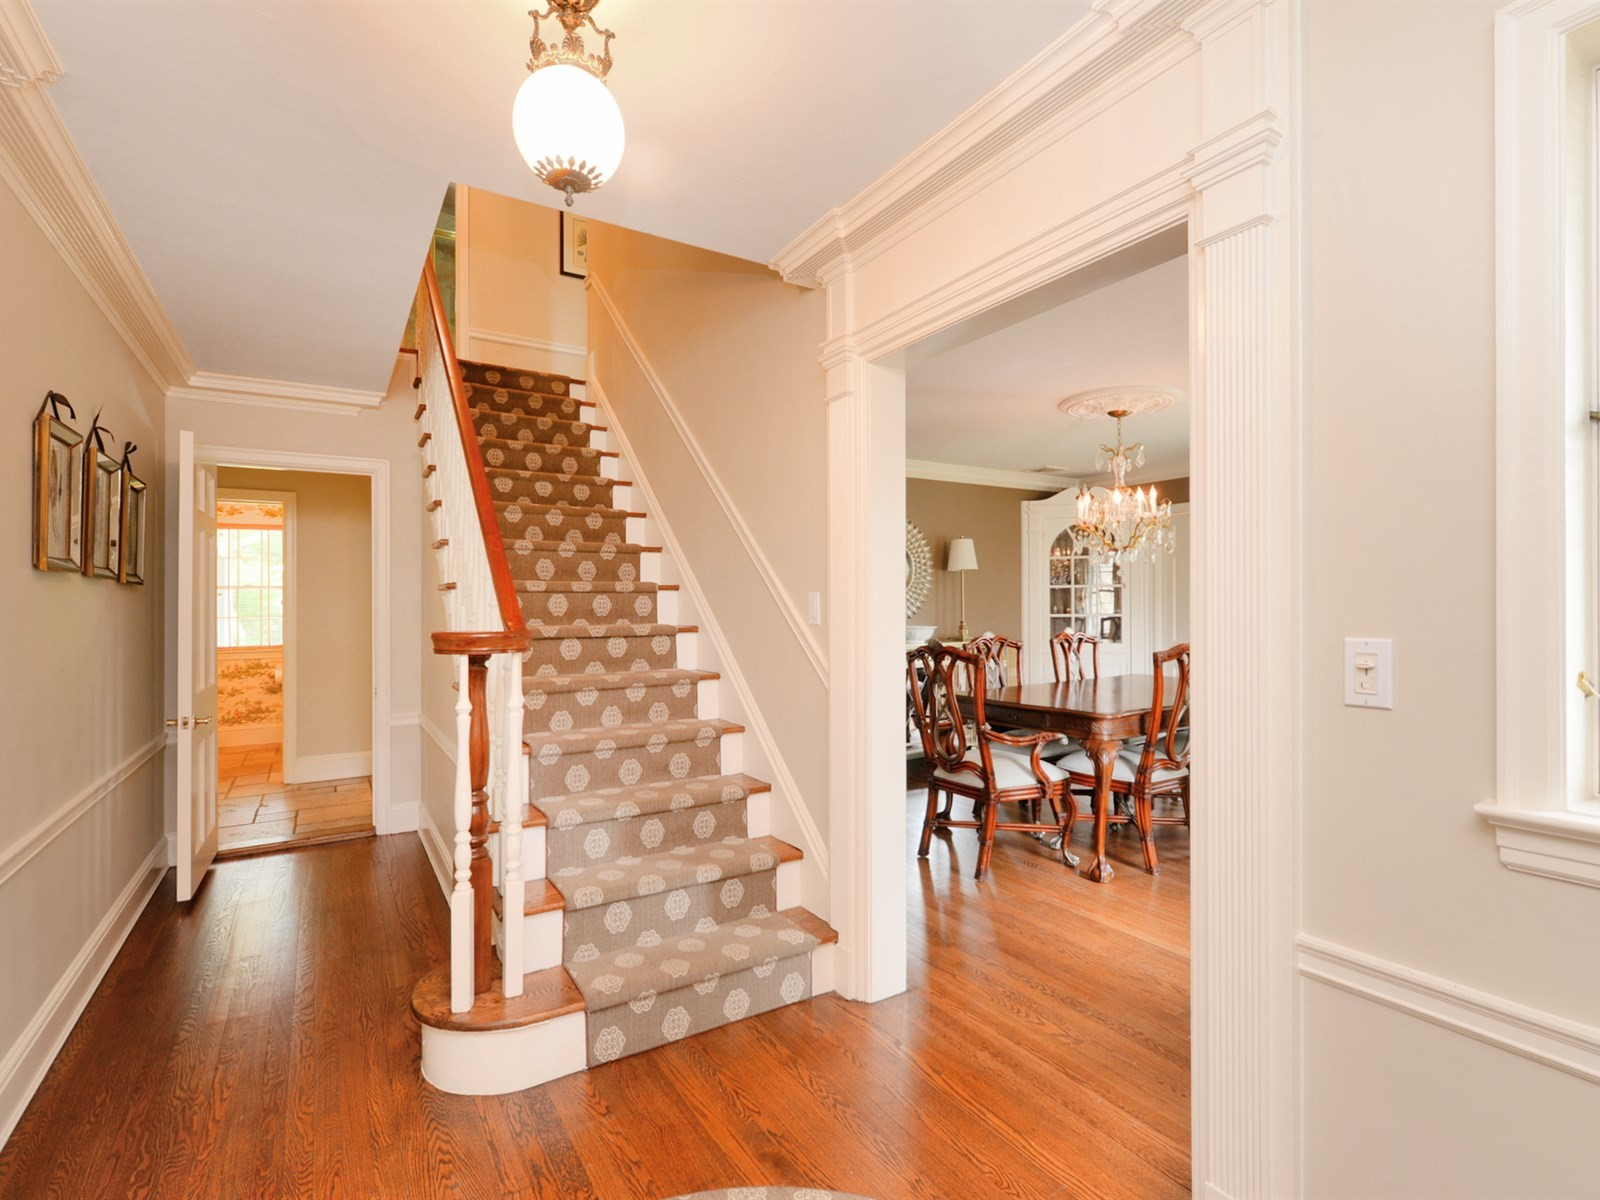 Single Family Home for Sale at Colonial 69 Roxen Rd Rockville Centre, New York 11570 United States